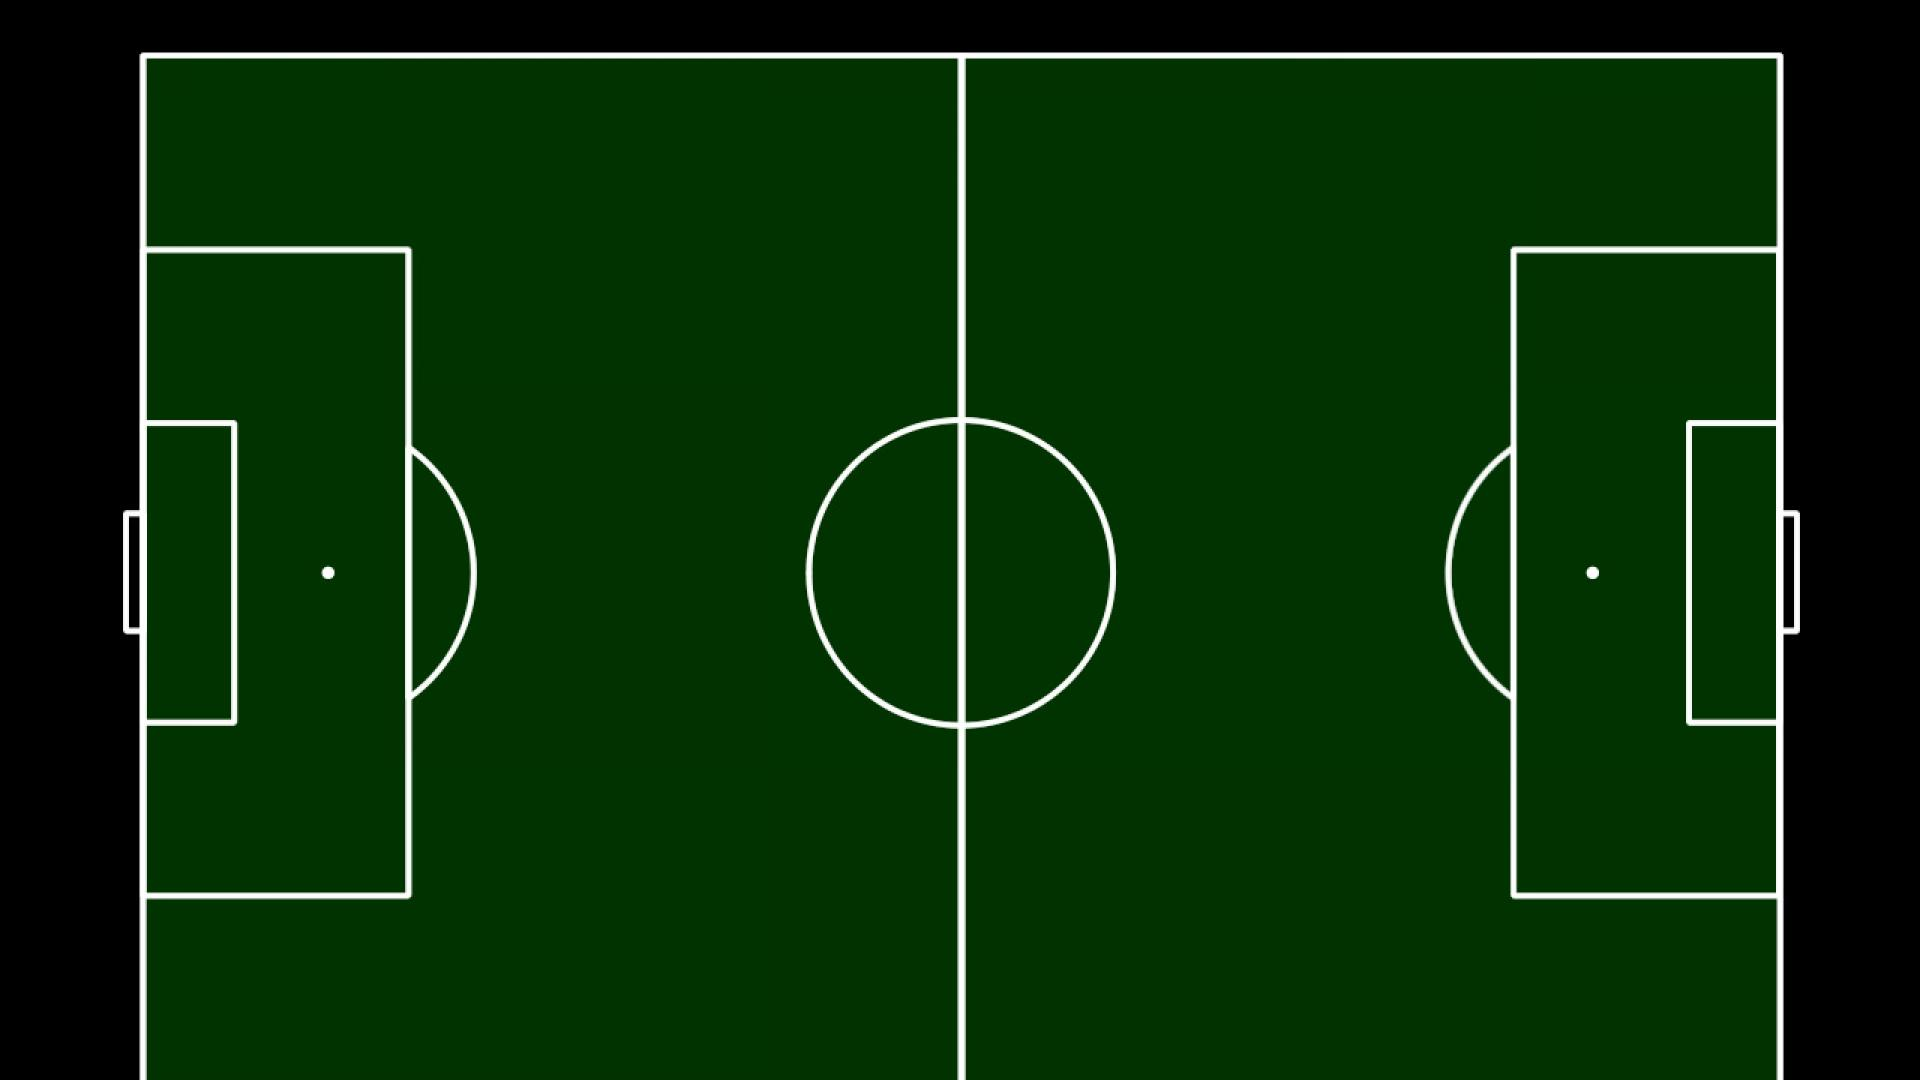 soccer pitch diagram   clipart bestanimated football field  soccer pitch